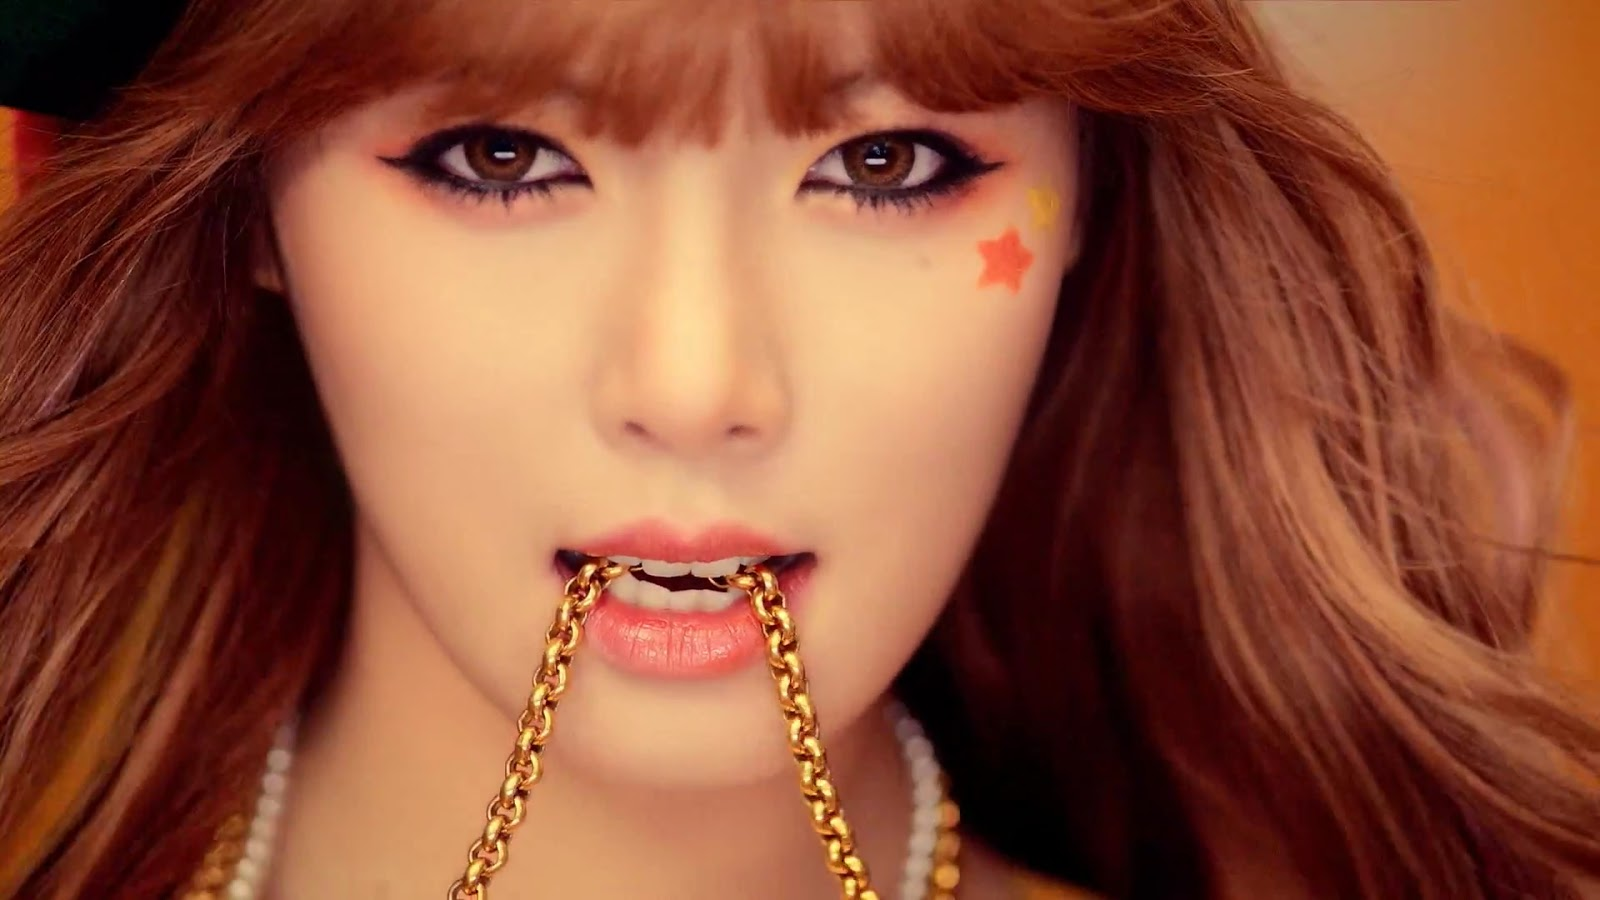 Hyuna ~ Ice Cream - Hyuna Wallpaper (33911449) - Fanpop